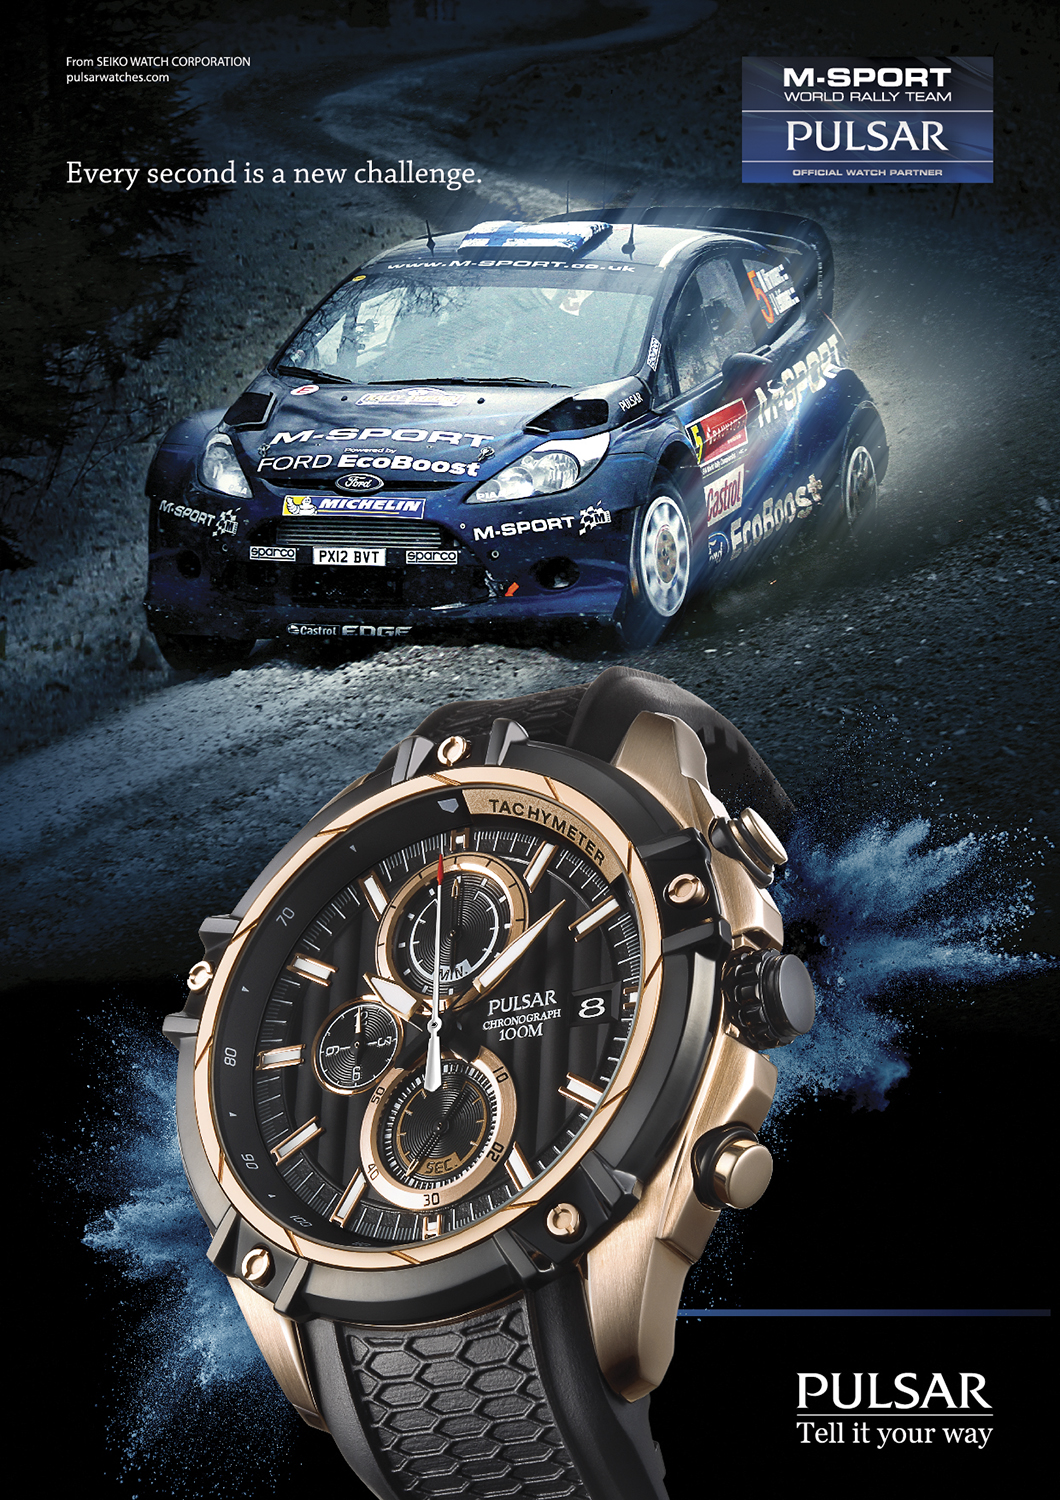 auto cars of watches intersection book time reviews racing ablogtowatch drivetime the drive